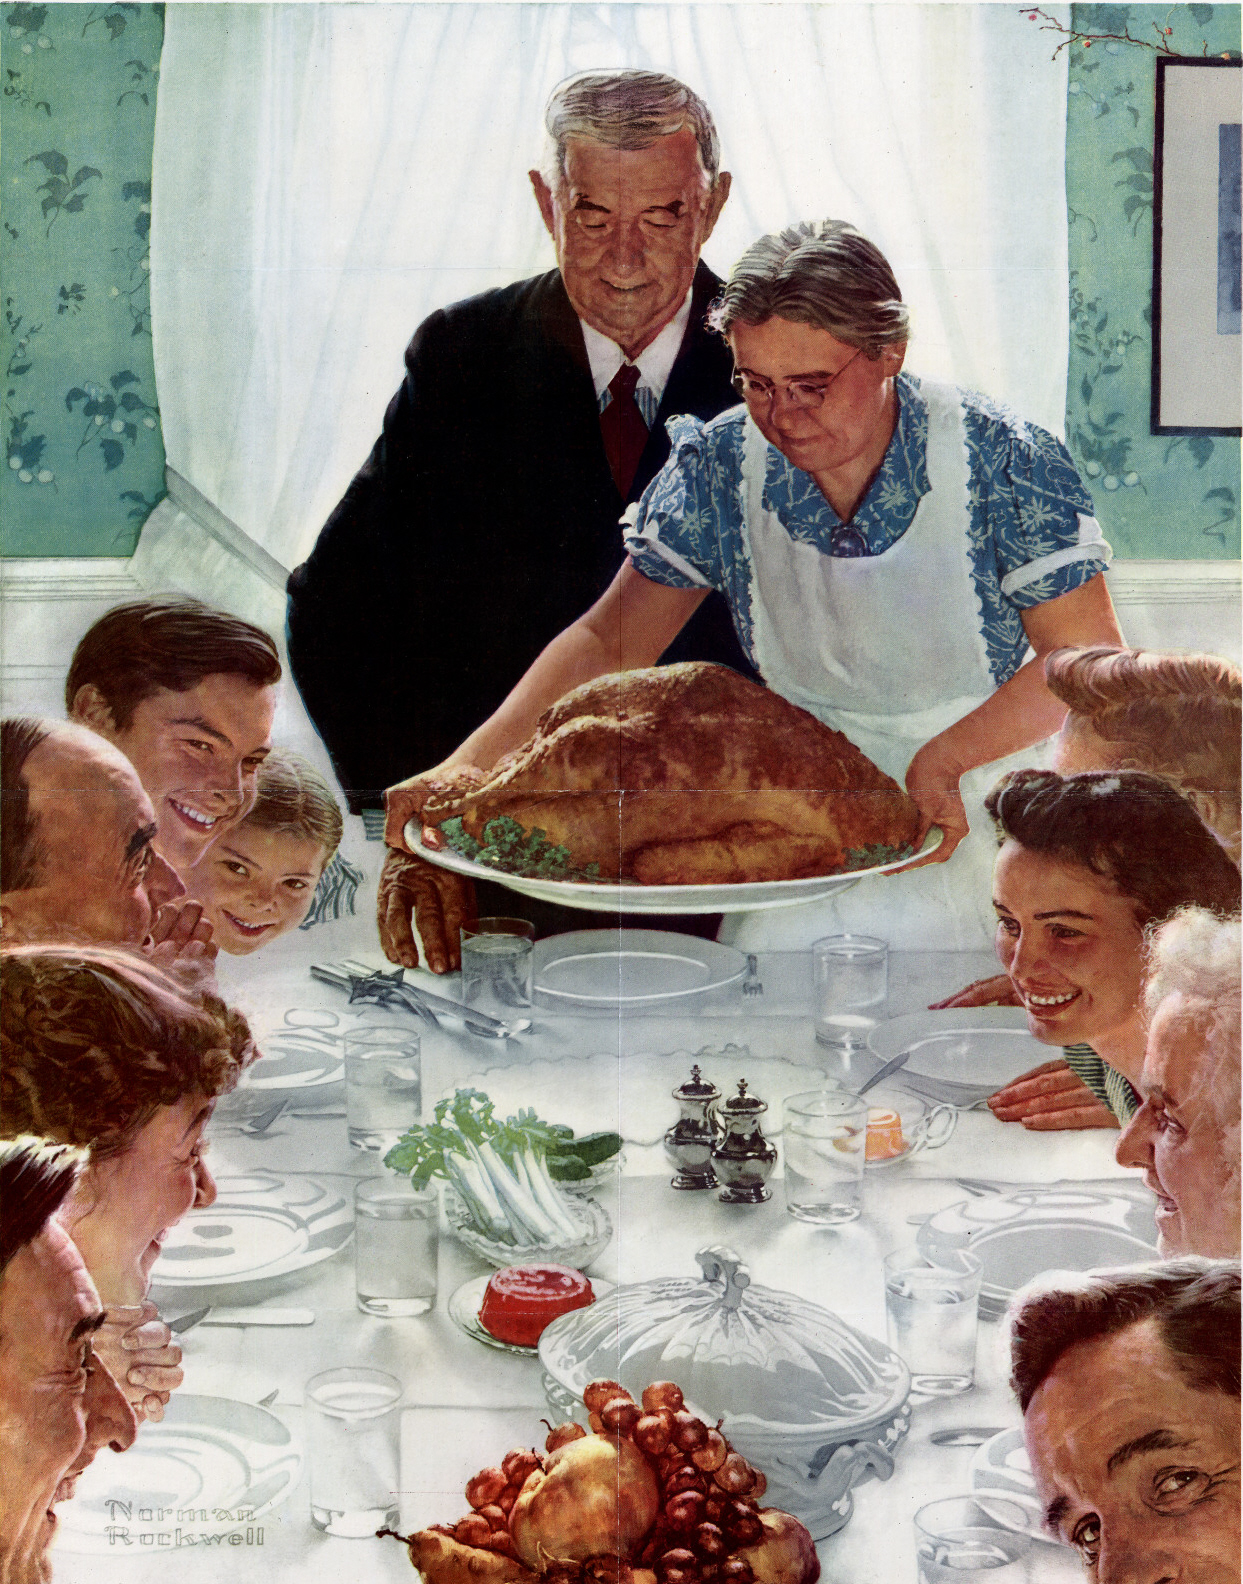 paintings-family-food-tables-thanksgiving-norman-rockwell-turkey-bird-_472406-32